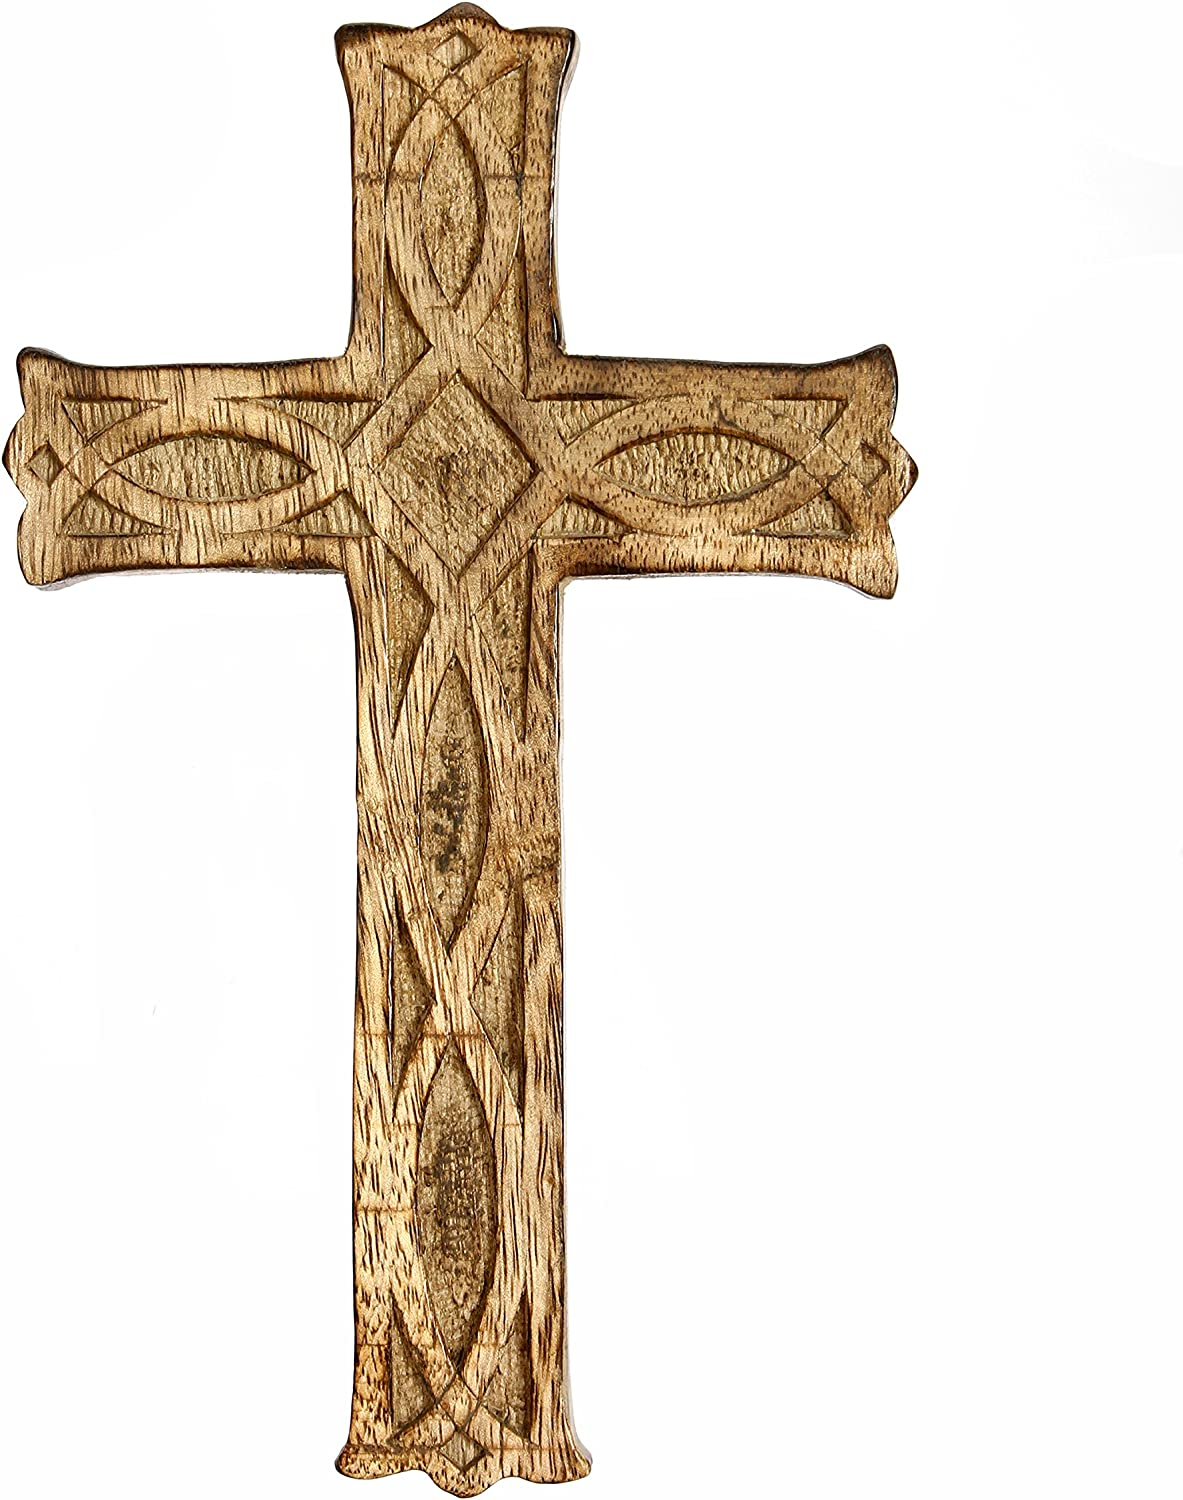 "Hosley Wooden Cross 8"" Long. Ideal Gift or Decoration for Home, Weddings, Party, Spa, Meditation, Home Office, Spa, Dorm"